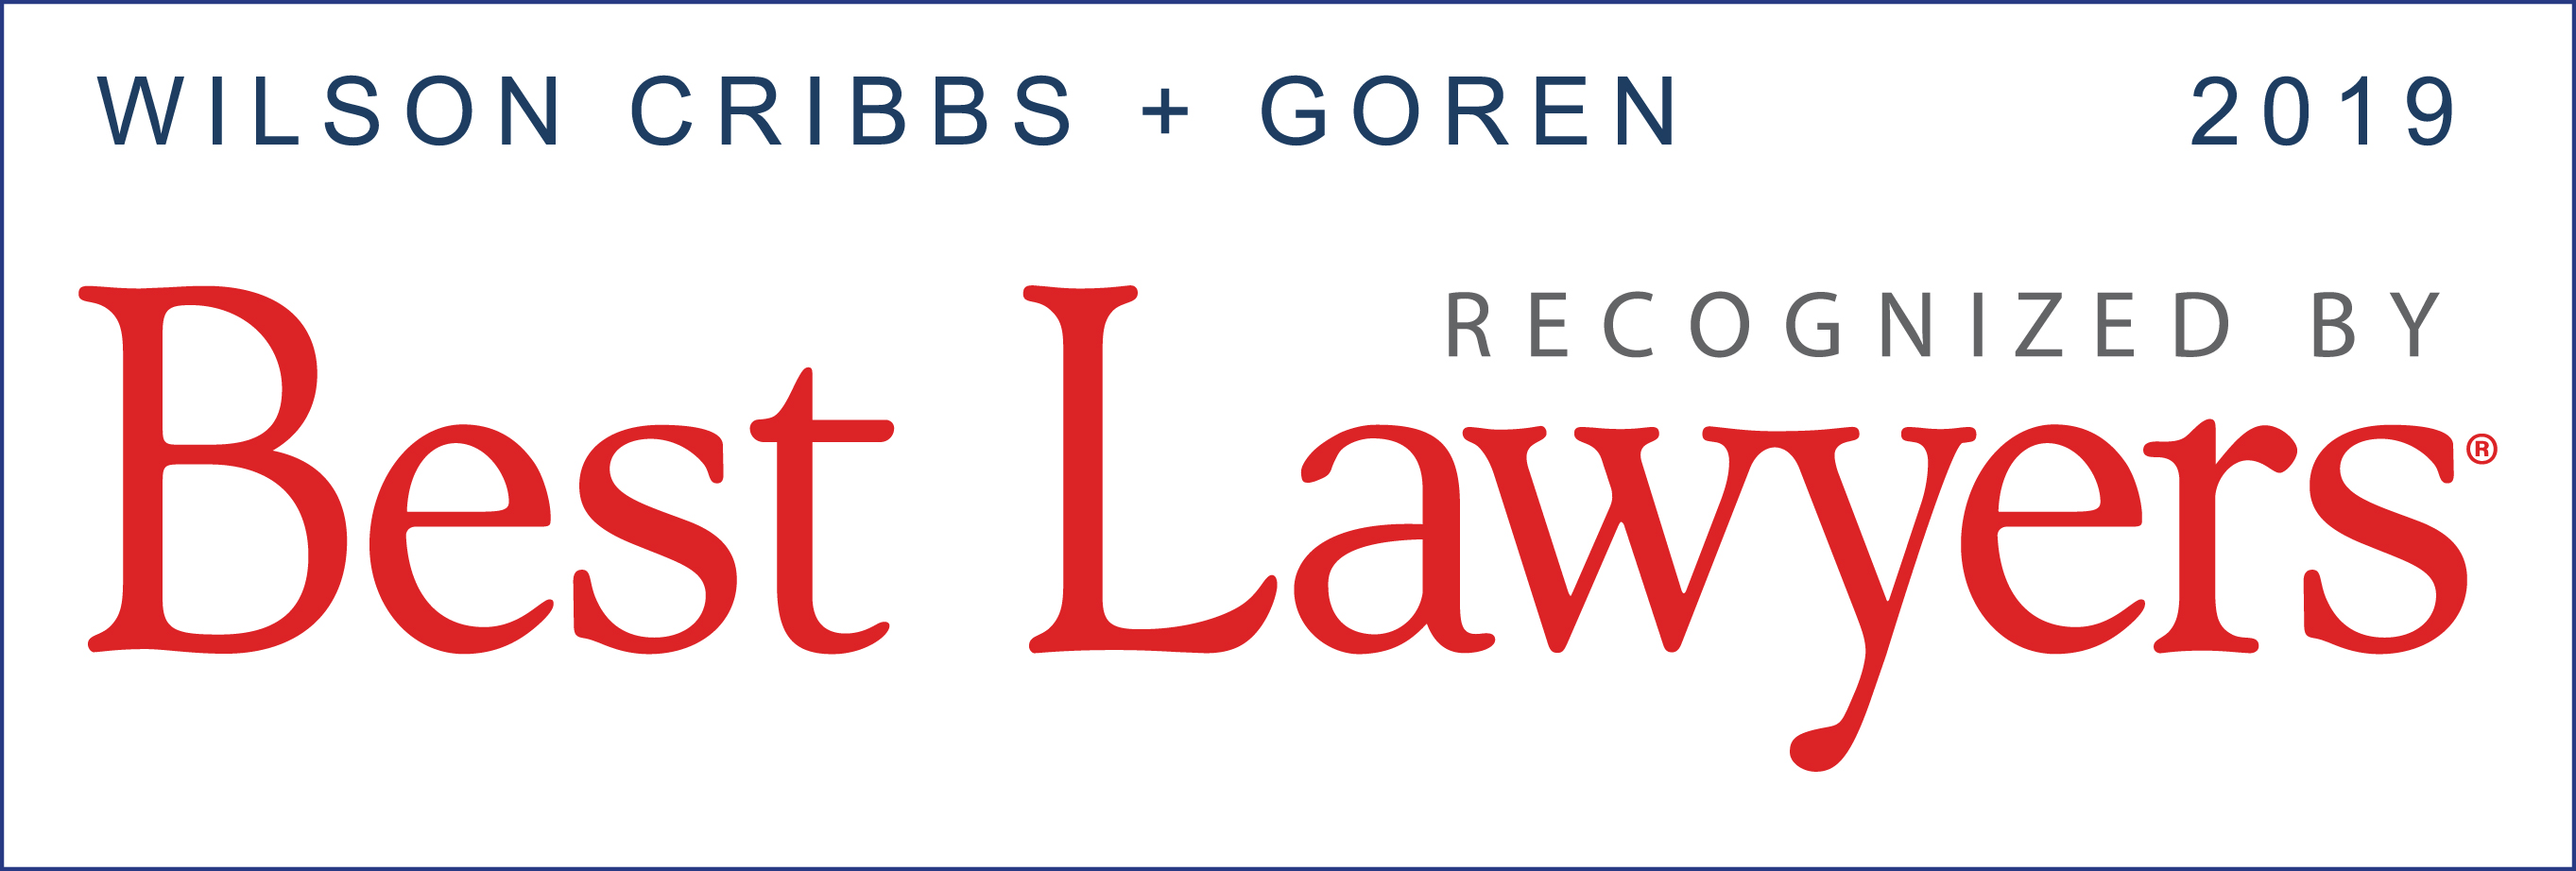 Best Lawyers - Wilson Cribbs and Goren